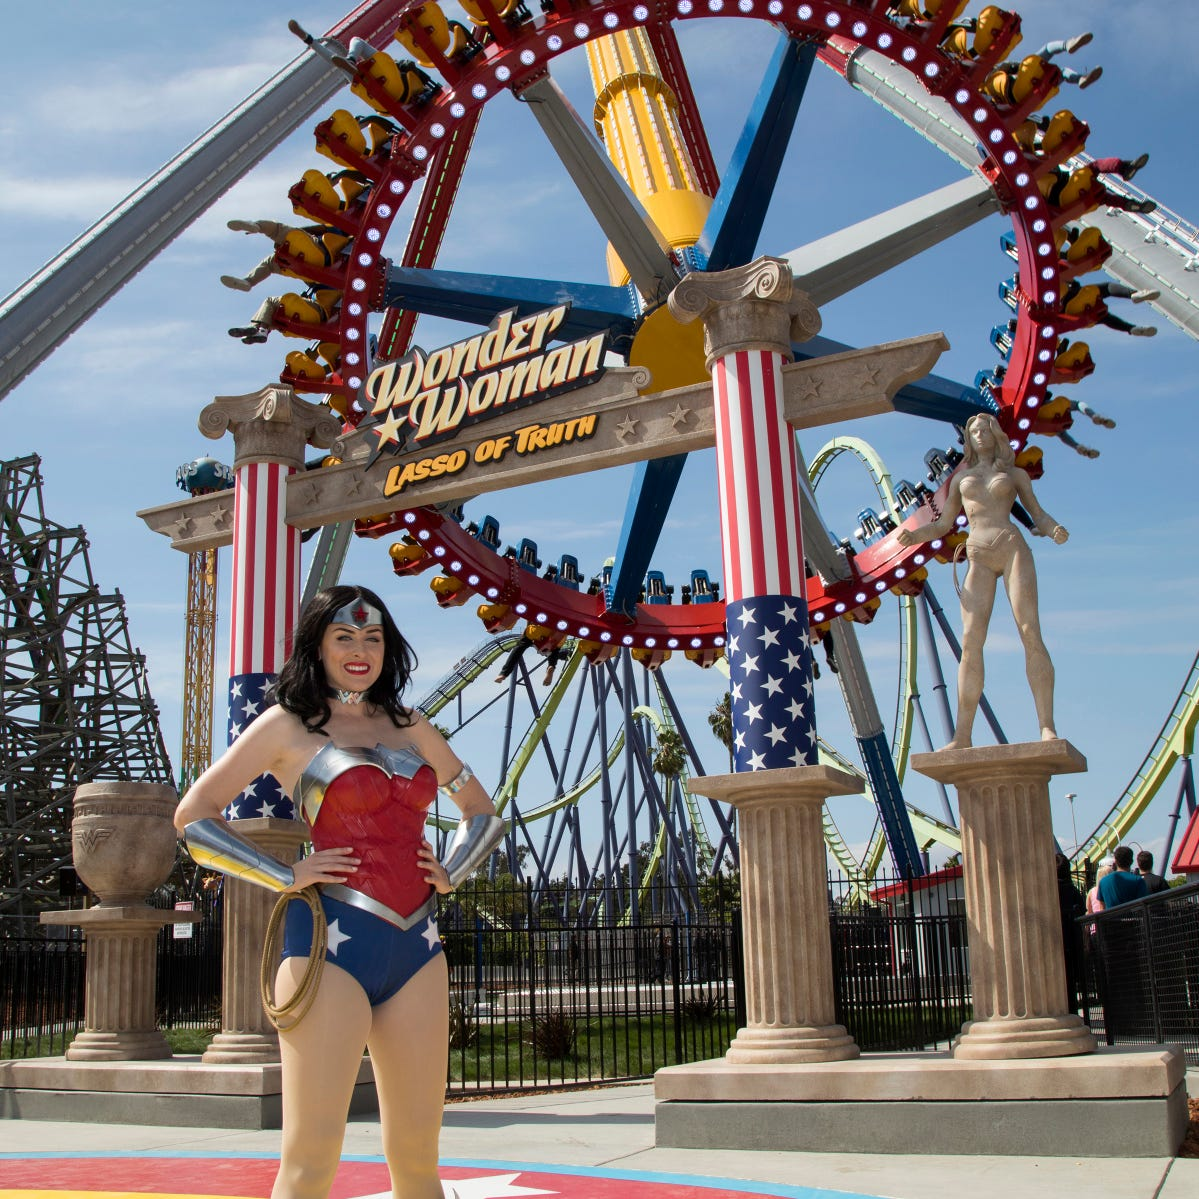 Wonder Woman ride takes record-breaking flight at Six Flags